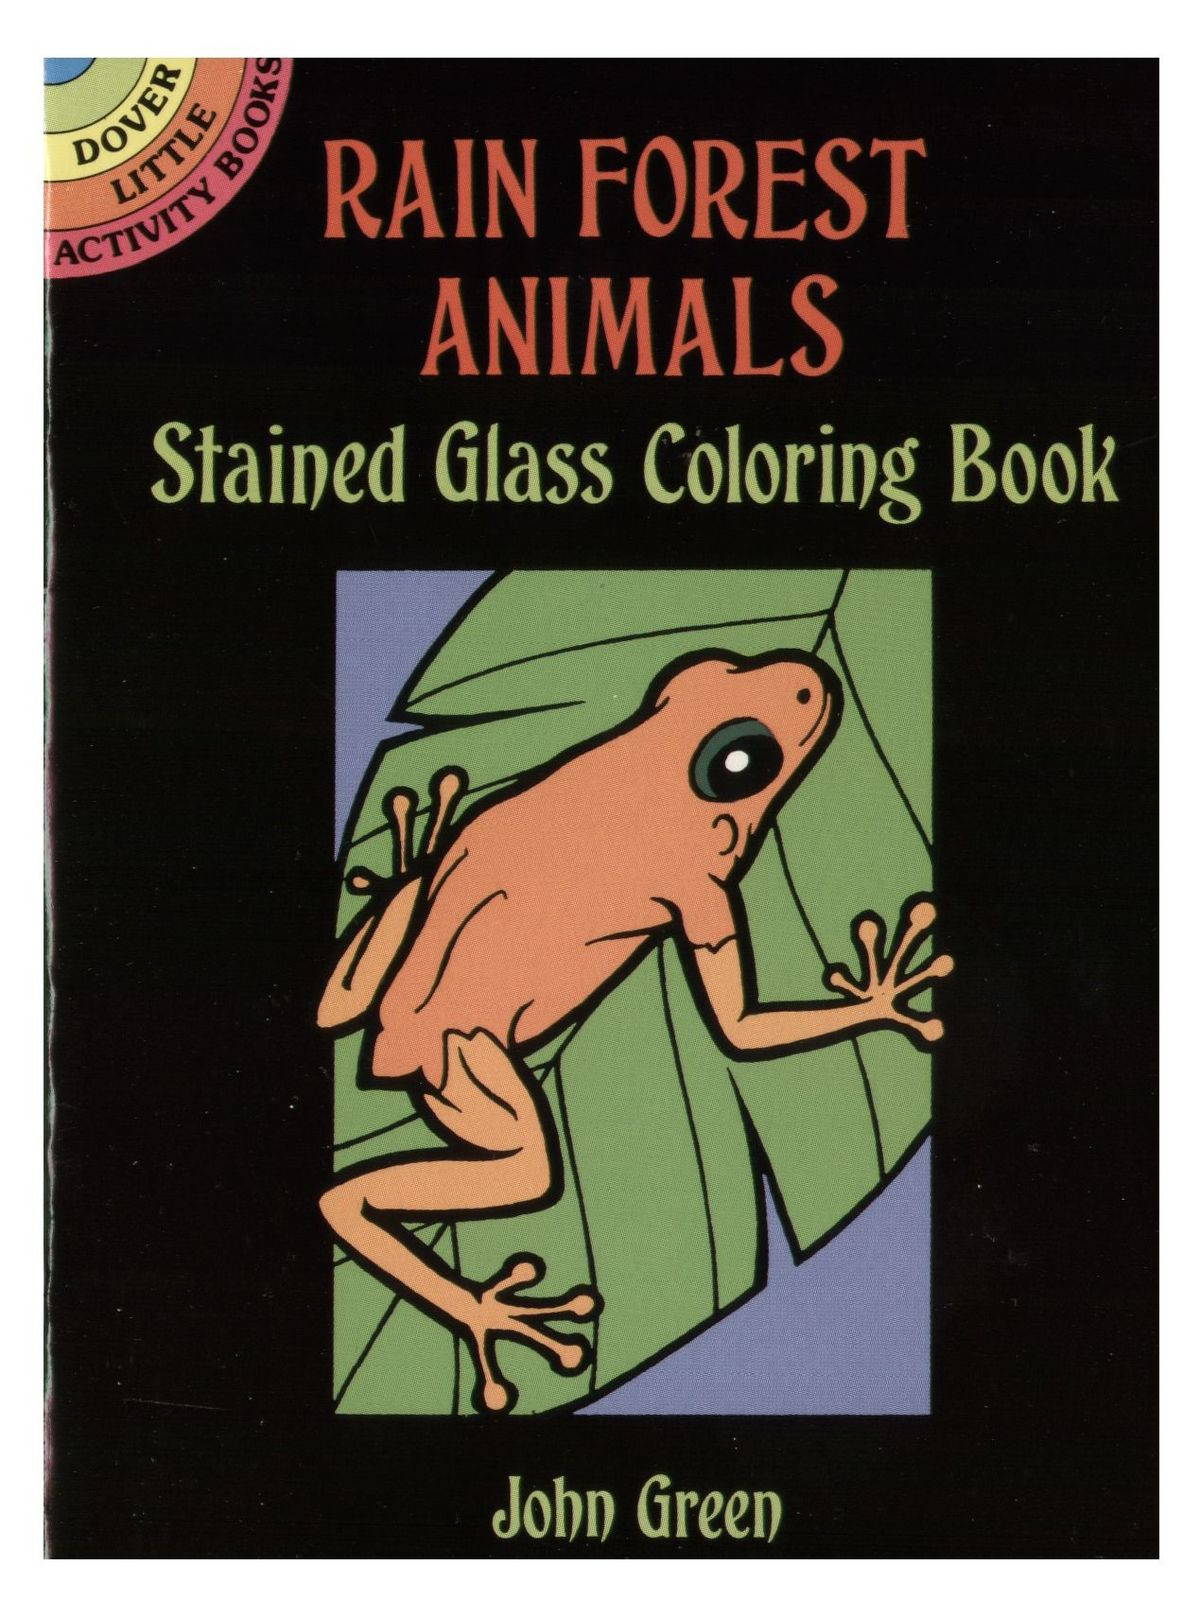 Dover - Rain Forest Animals Stained Glass Coloring Book